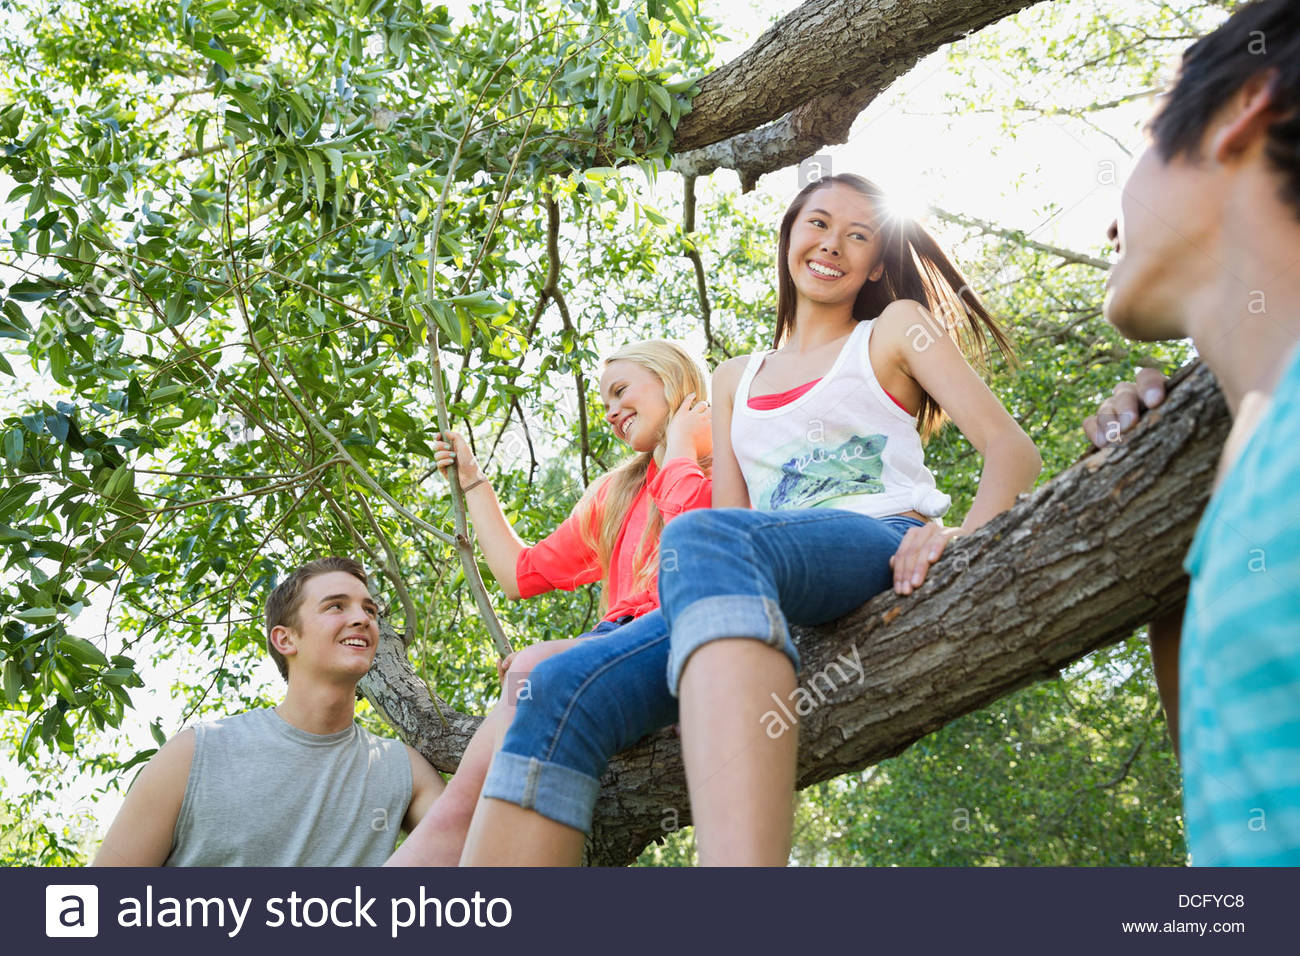 Teens spending time together outdoors - Stock Image